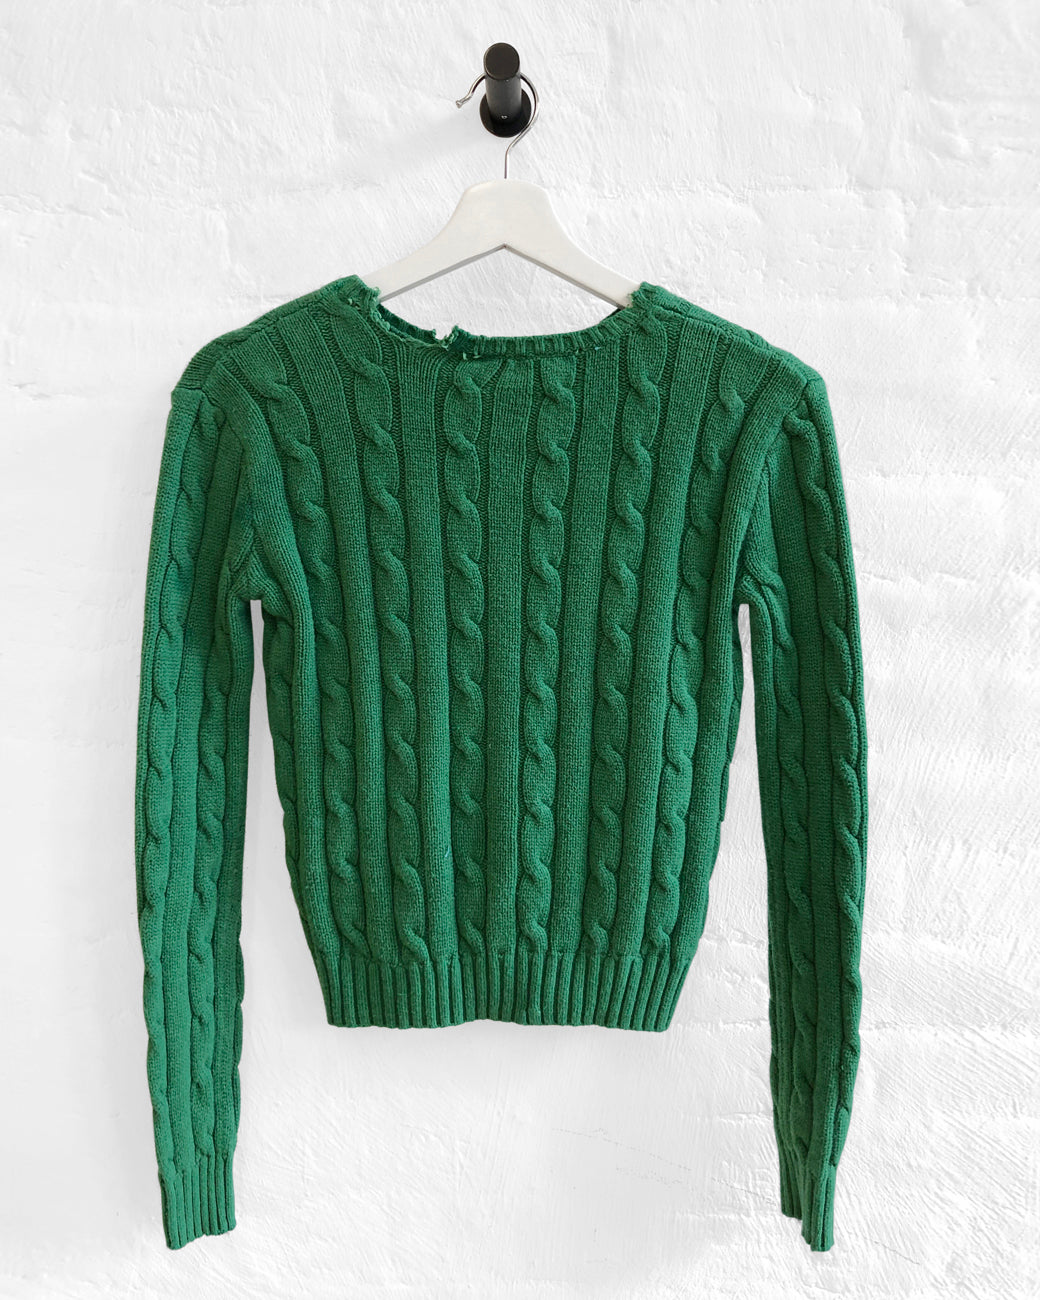 Shrunken Cable Sweater - Kelly Green